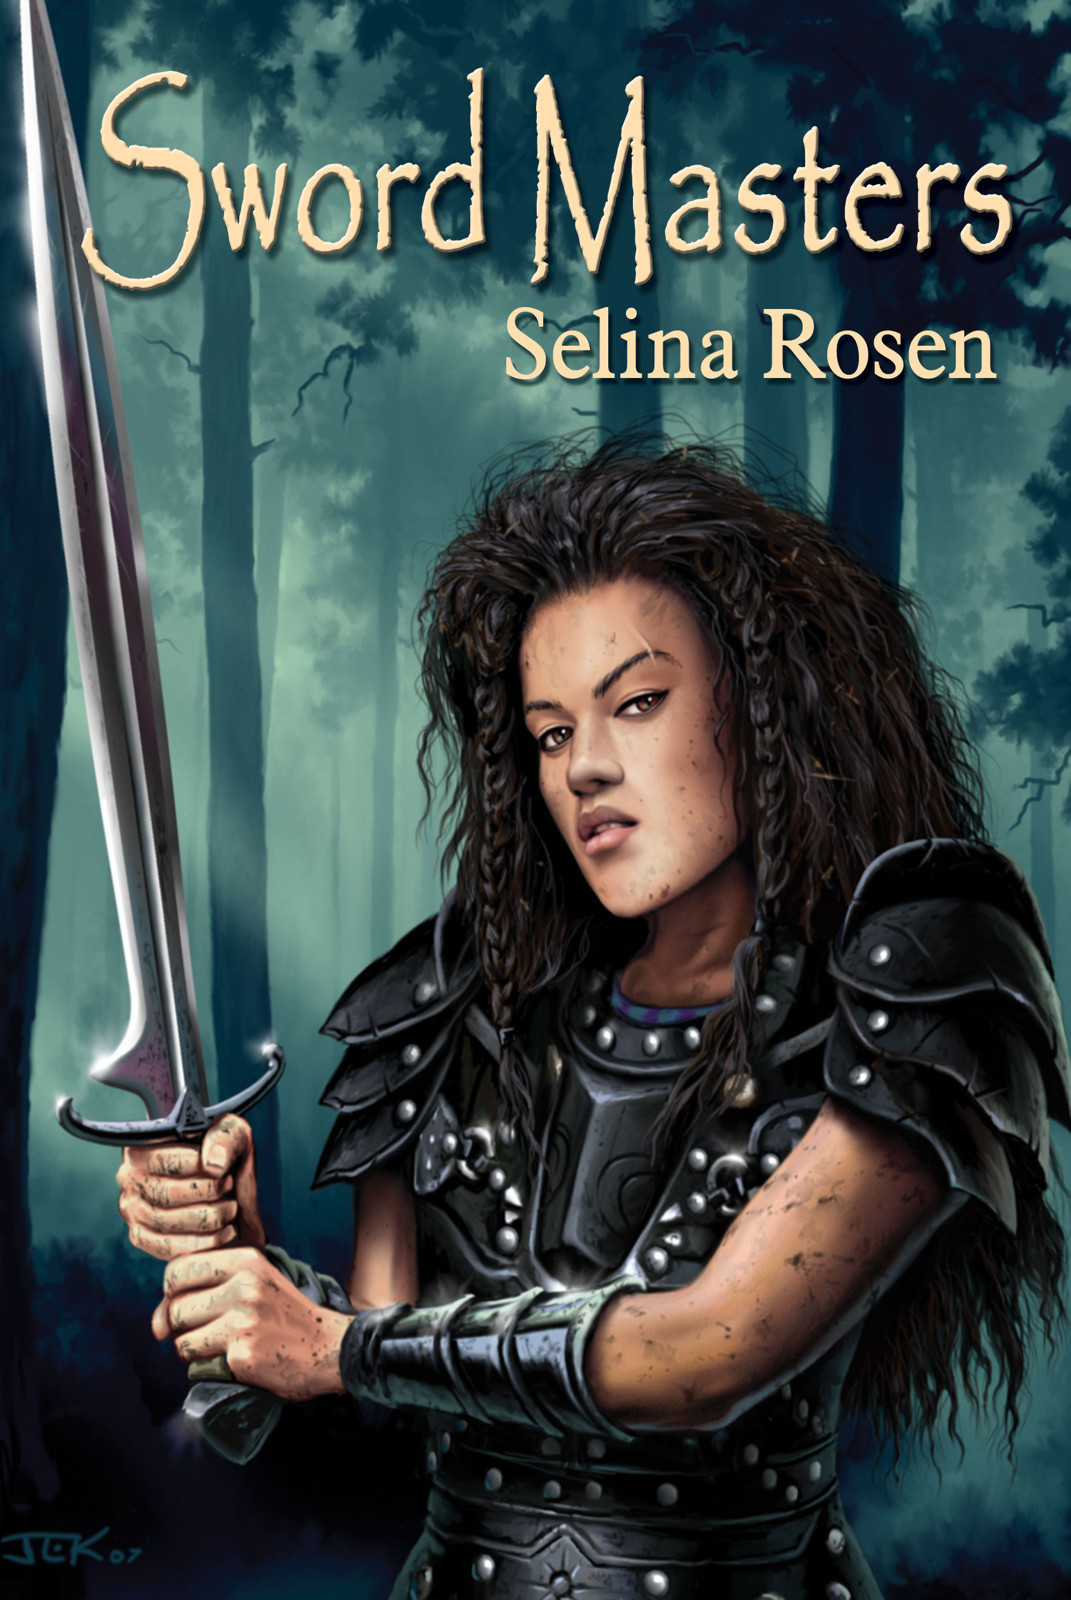 Sword Masters by Selina Rosen 00028